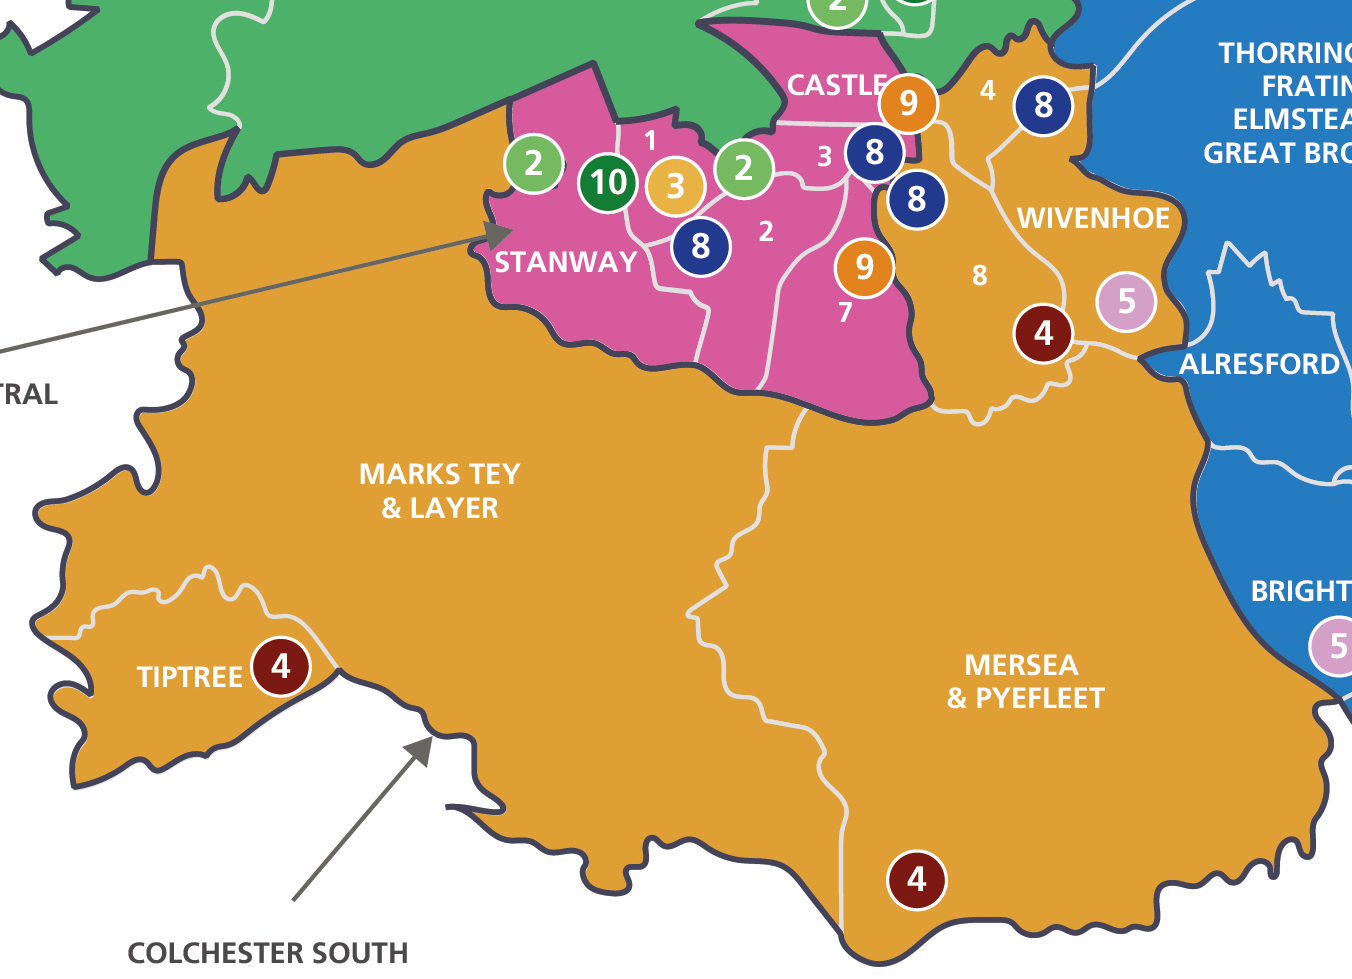 Colchester South